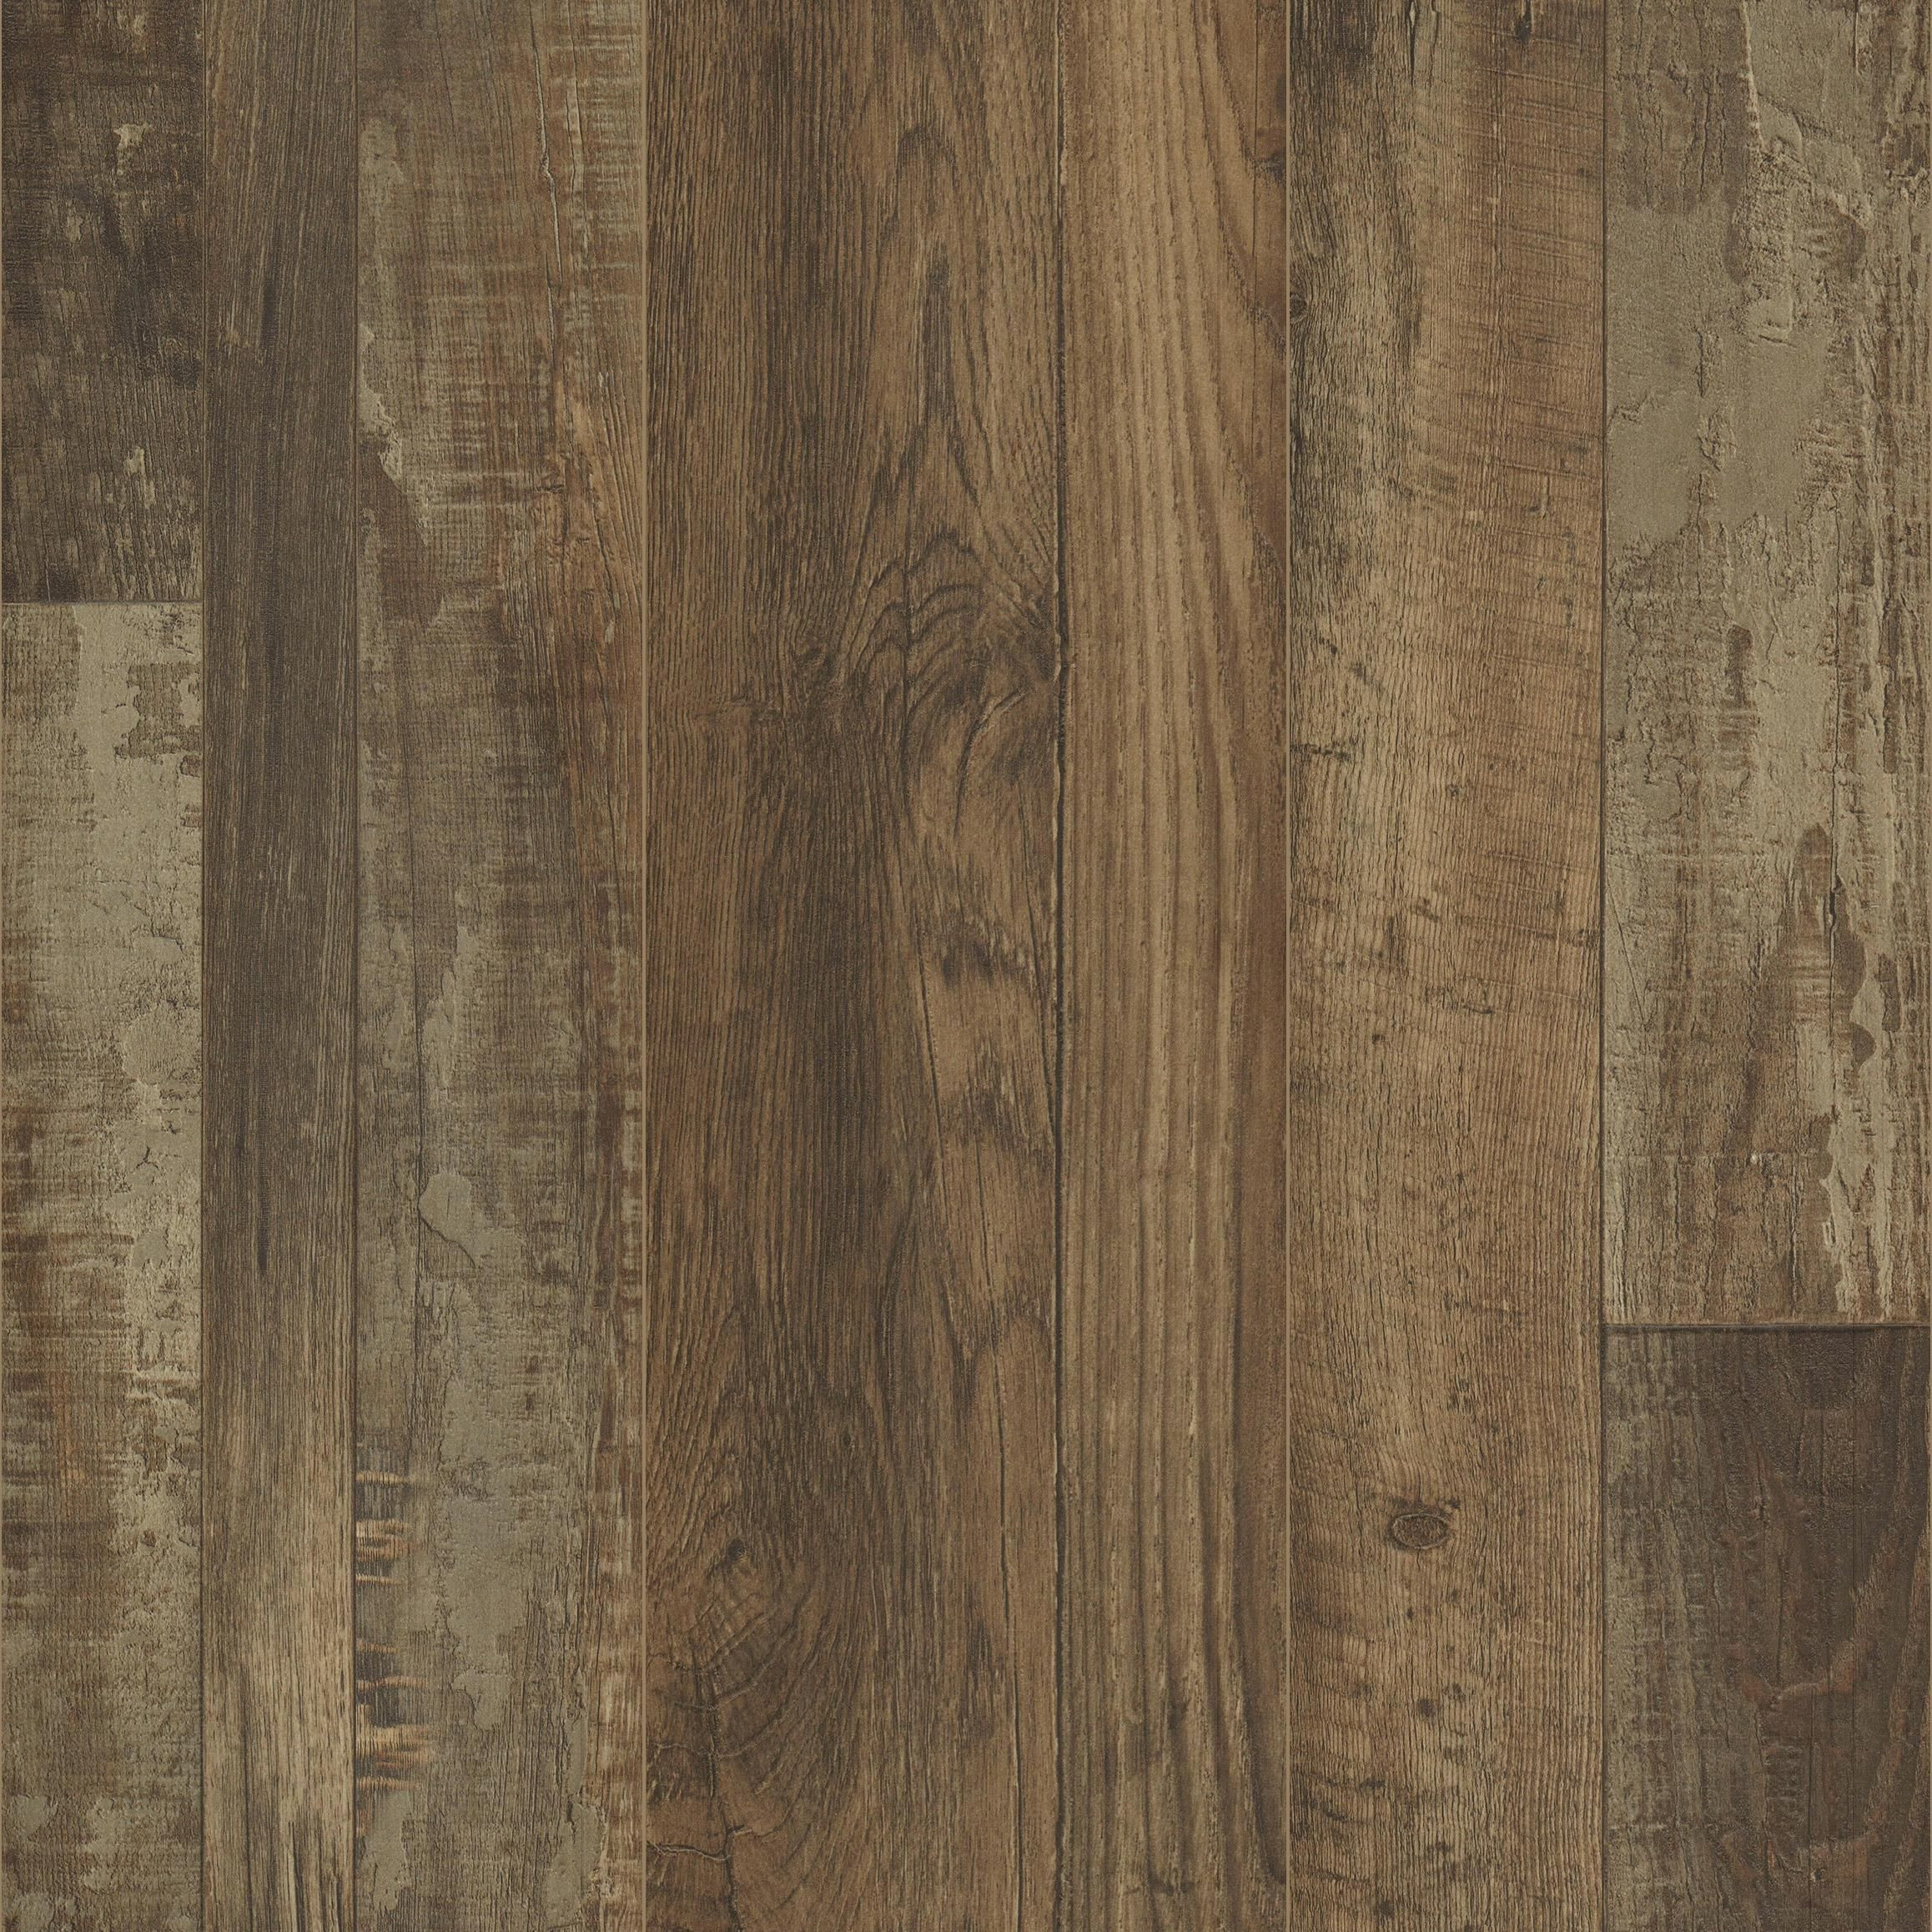 Top Quality Hardwood Flooring Store Of Superior Flooring Showroom top Quality Hardwood Flooring Store In Superior Flooring Uniboard Laminate Flooring island Cherry